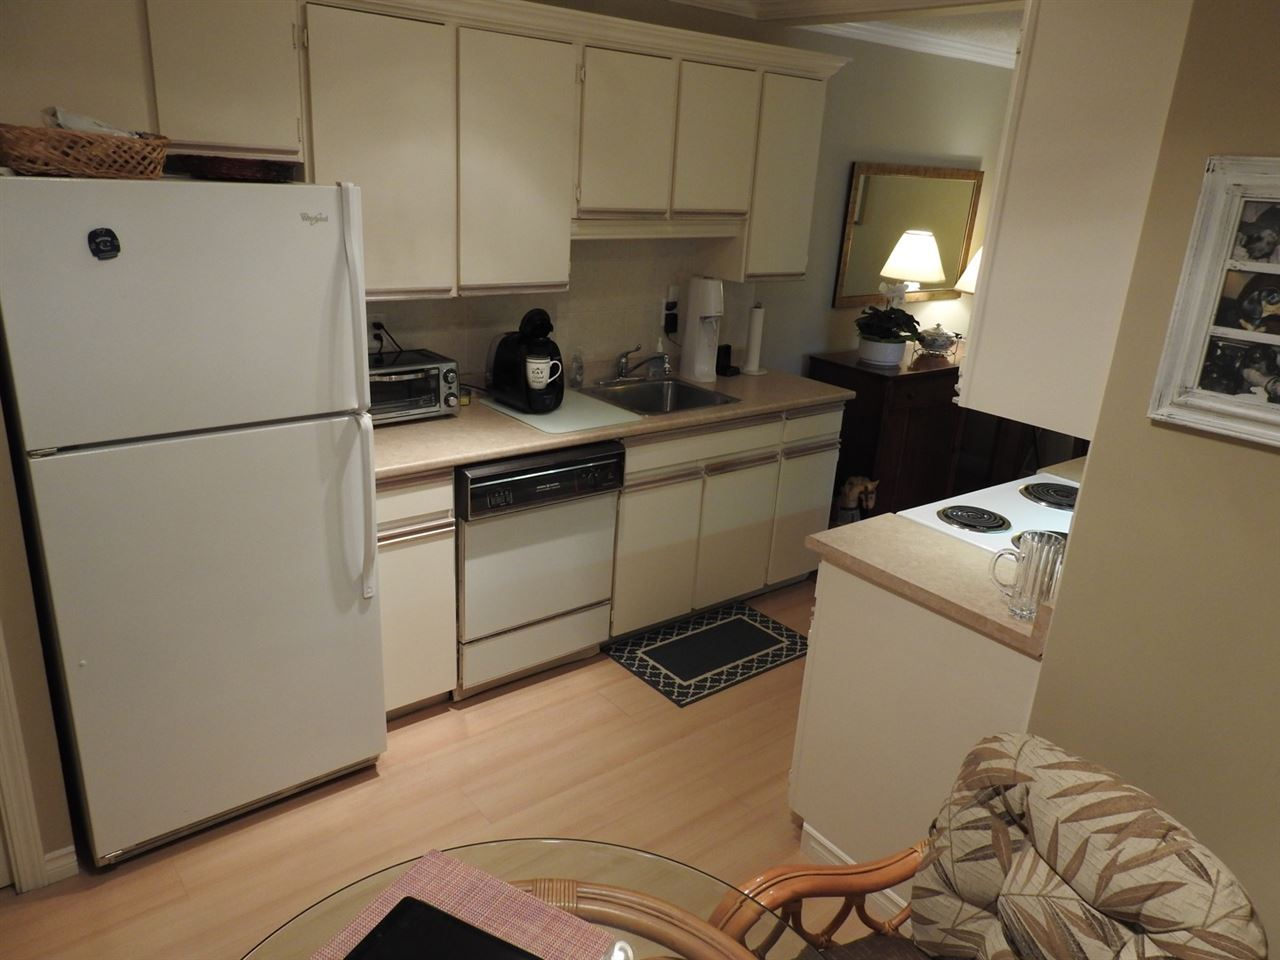 110 1155 ROSS ROAD - Lynn Valley Apartment/Condo for sale, 2 Bedrooms (R2560572) - #8